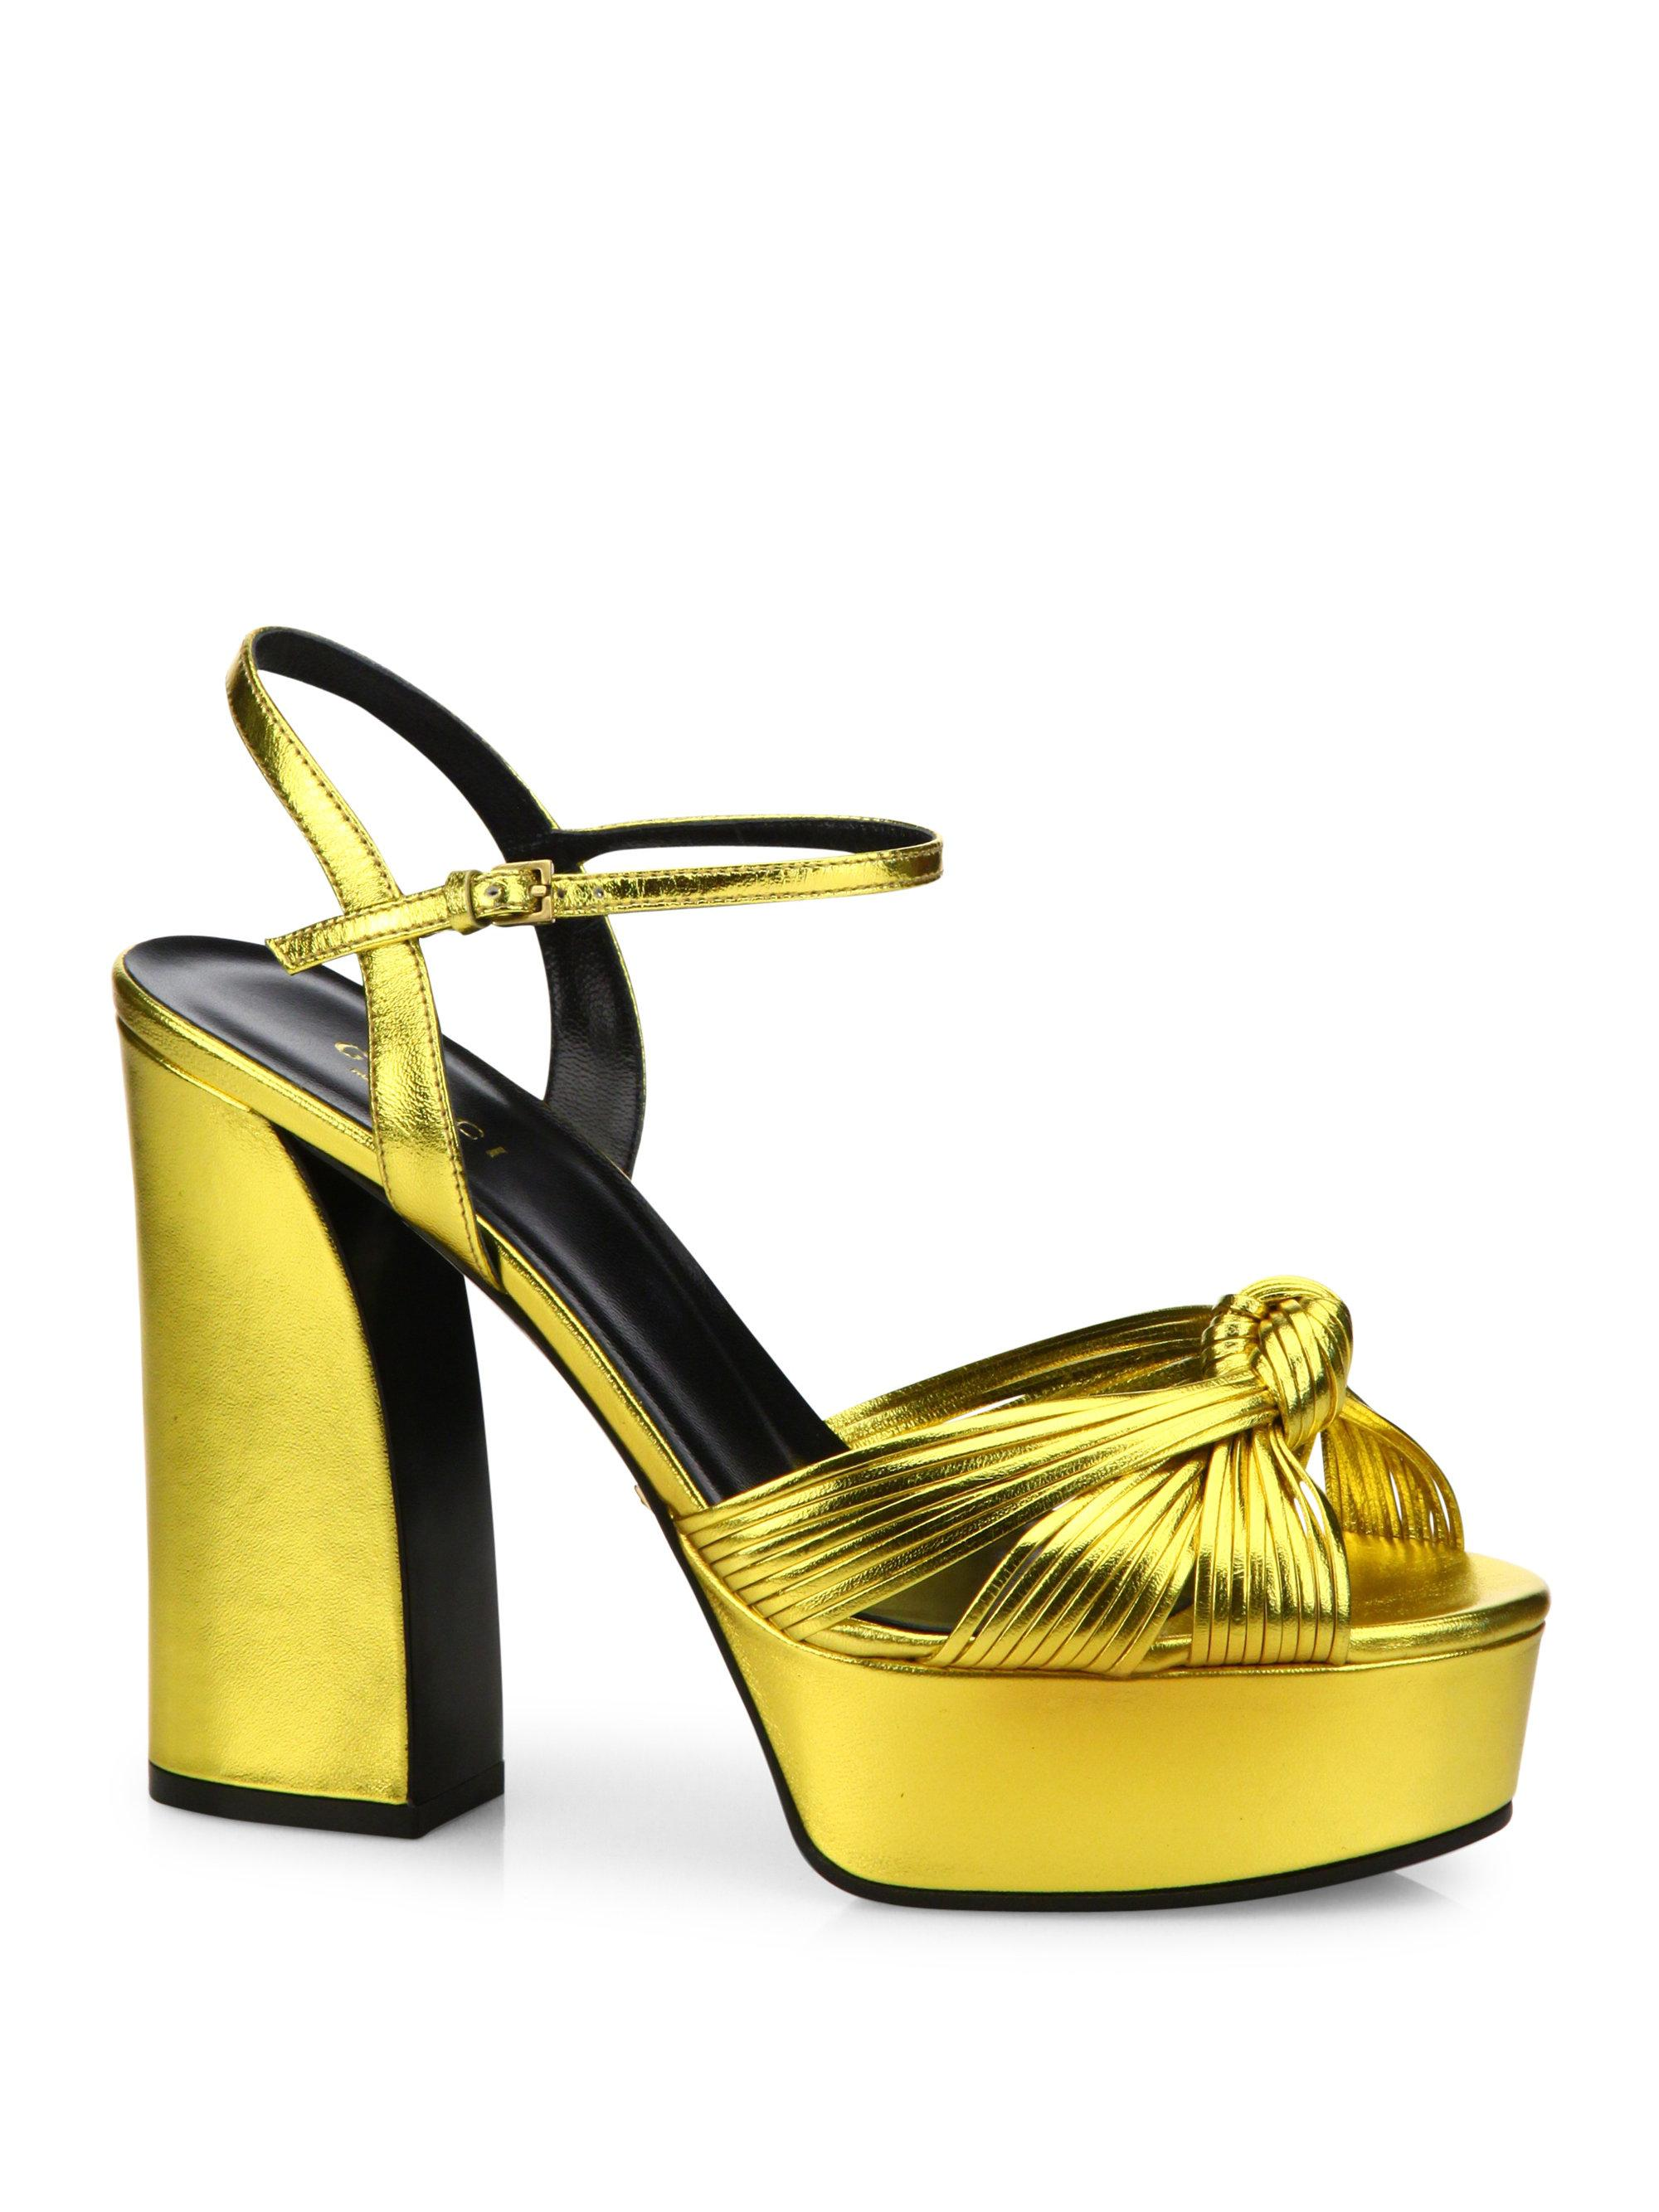 b9c2a7fbb2a3 Gucci Allie Knotted Metallic Leather Platform Sandals in Metallic - Lyst